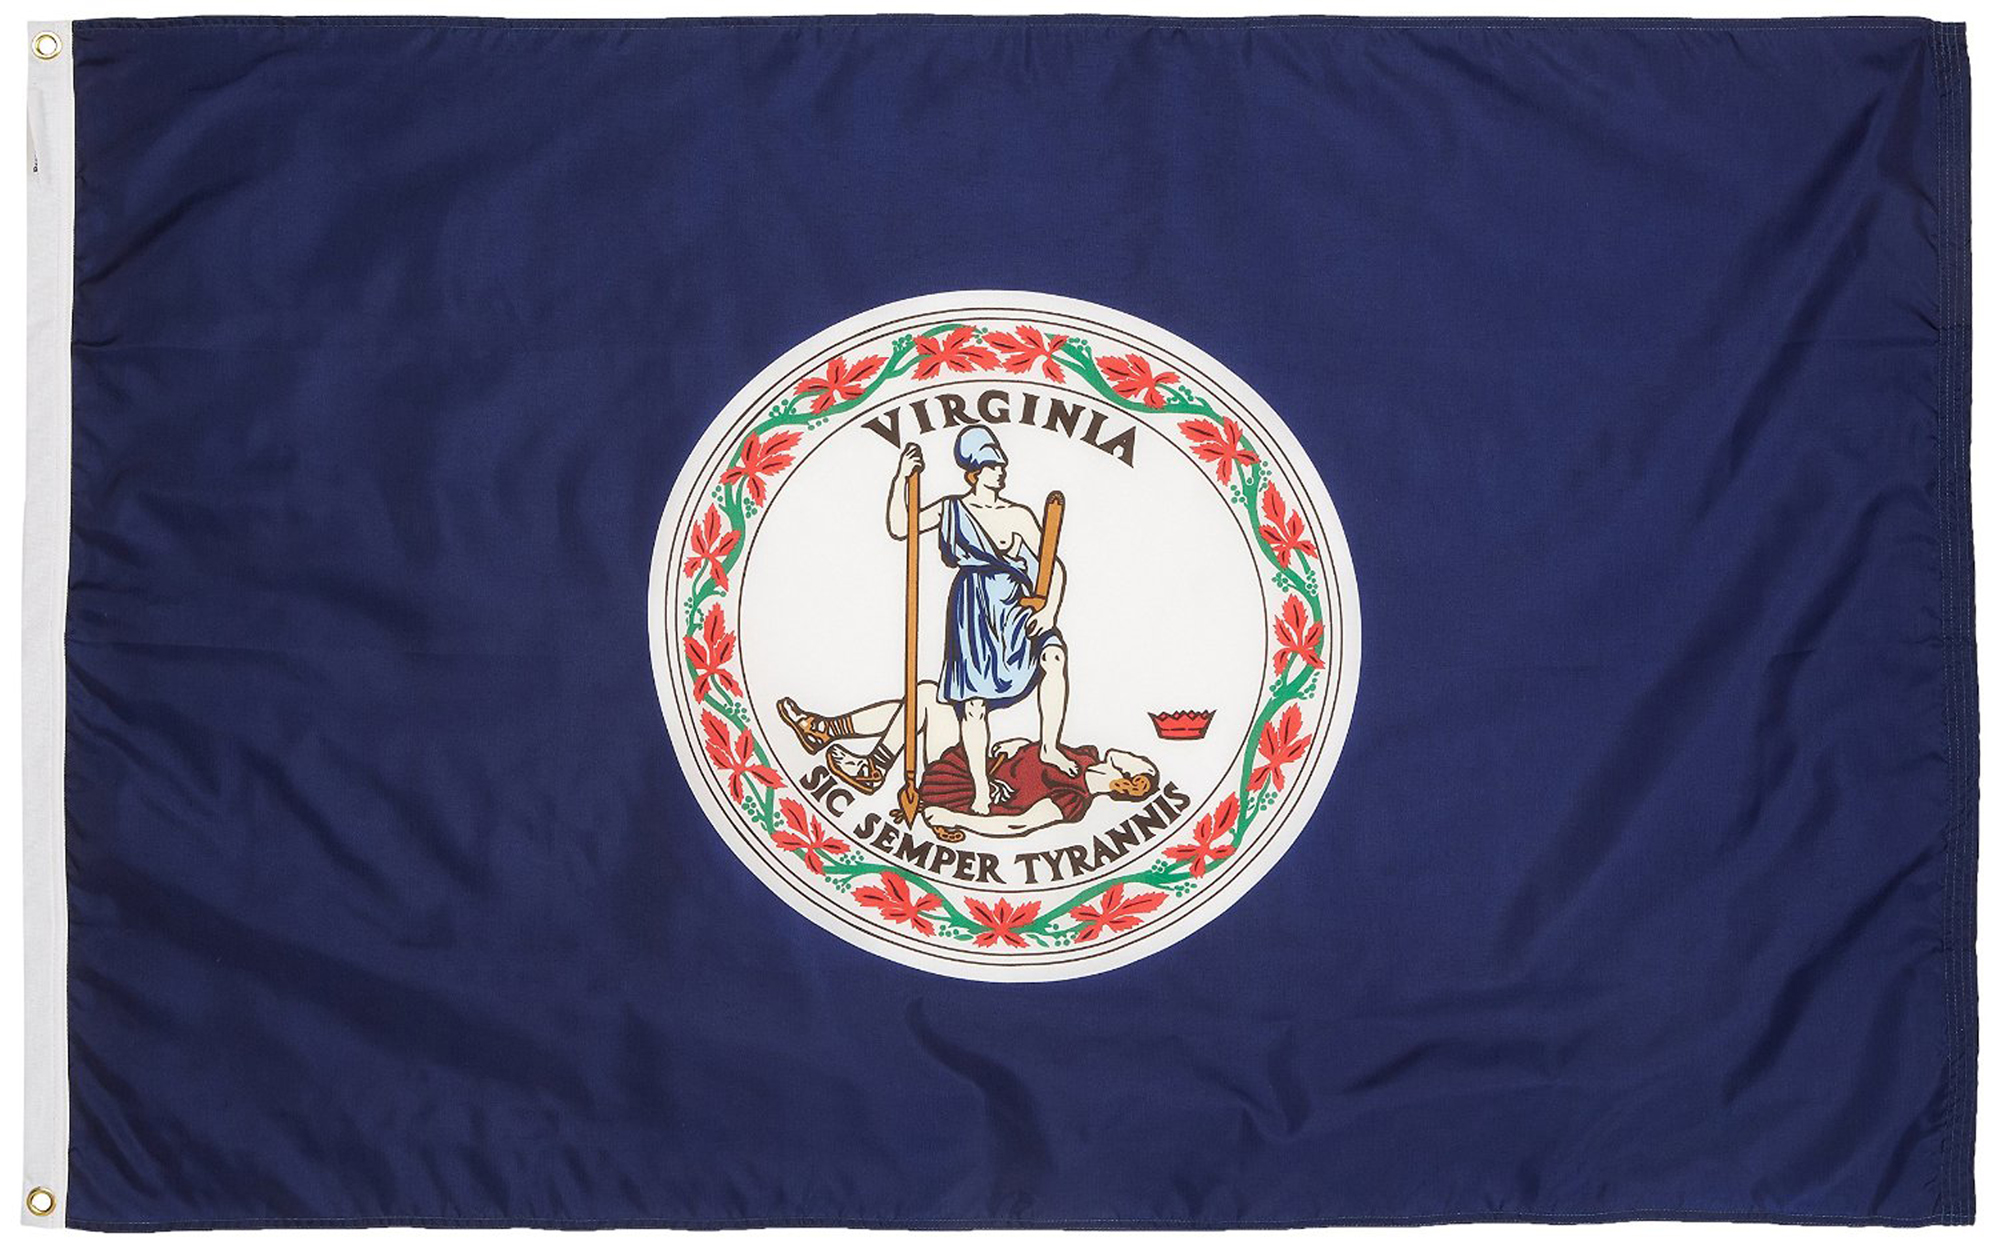 Shop72 US Virginia State Flags - Virginia Flag - 3x5' Flag from Sturdy 100D Polyester - Canvas Header Brass Grommets Double Stitched from Wind Side